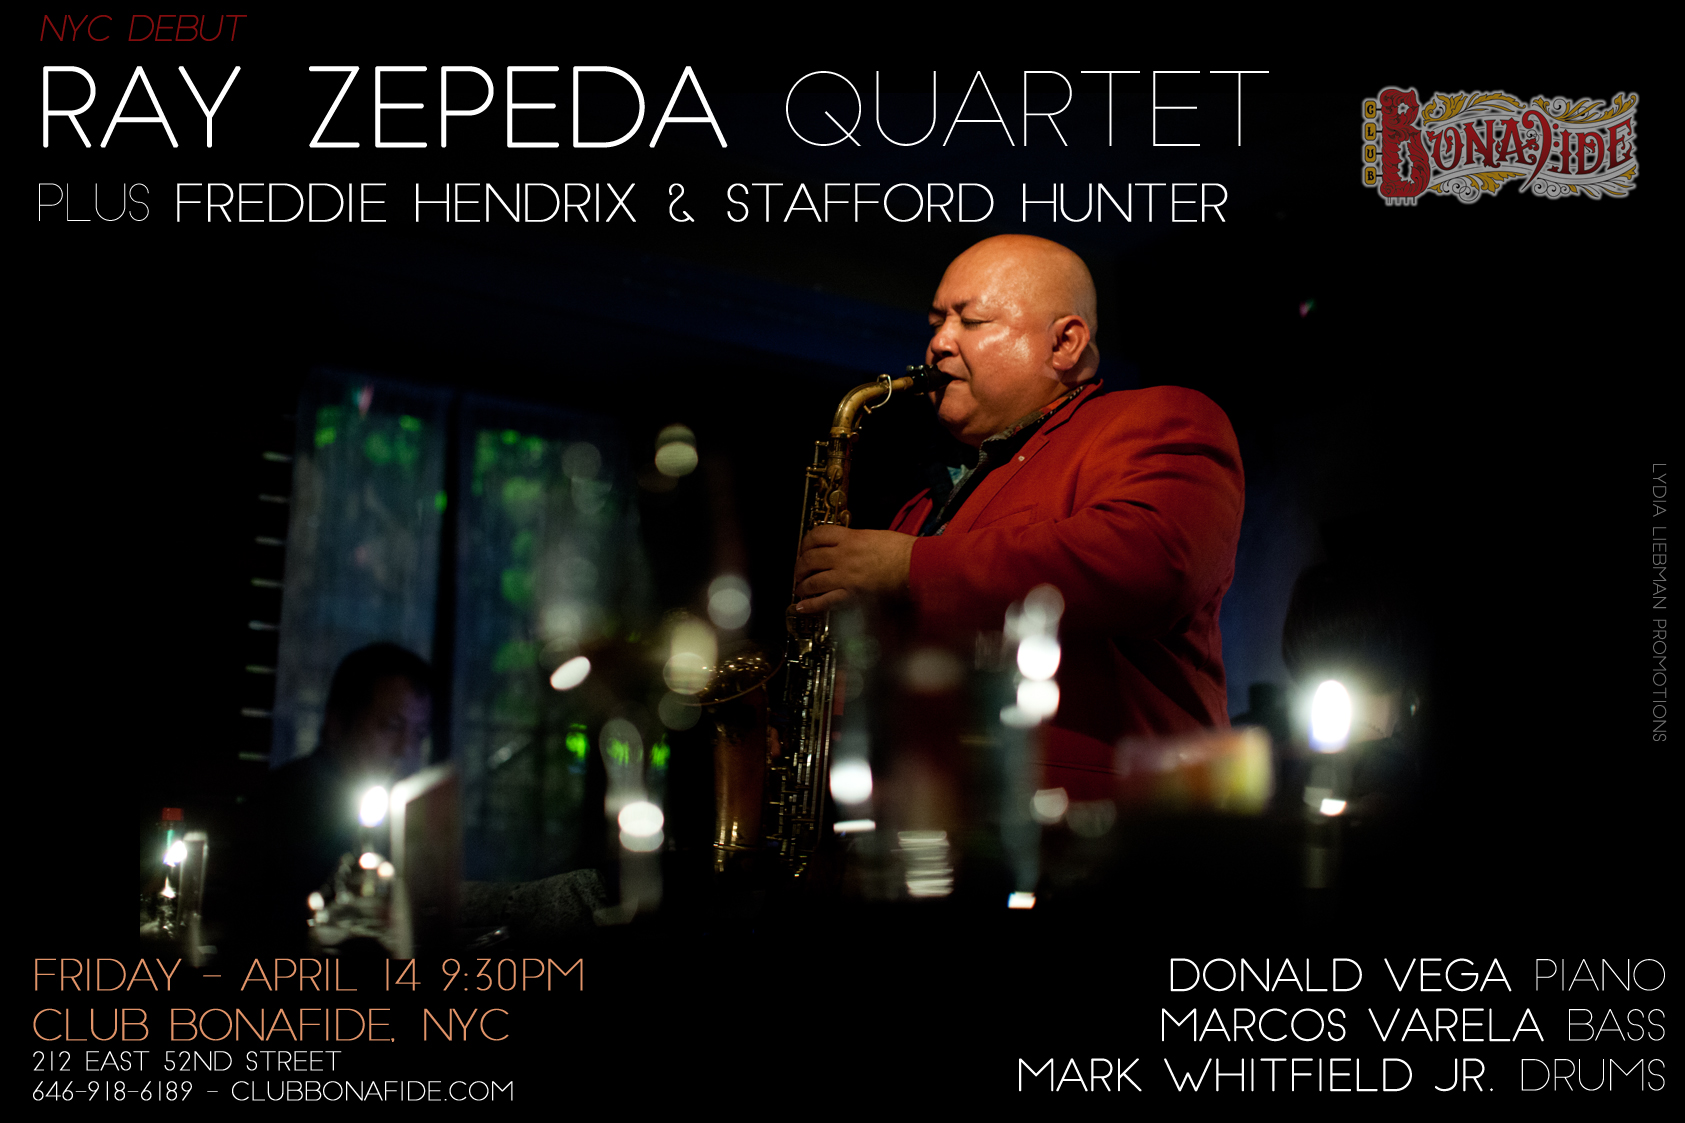 Ray Zepeda Quartet Makes Debut at Club Bonafide on April 14, 2017